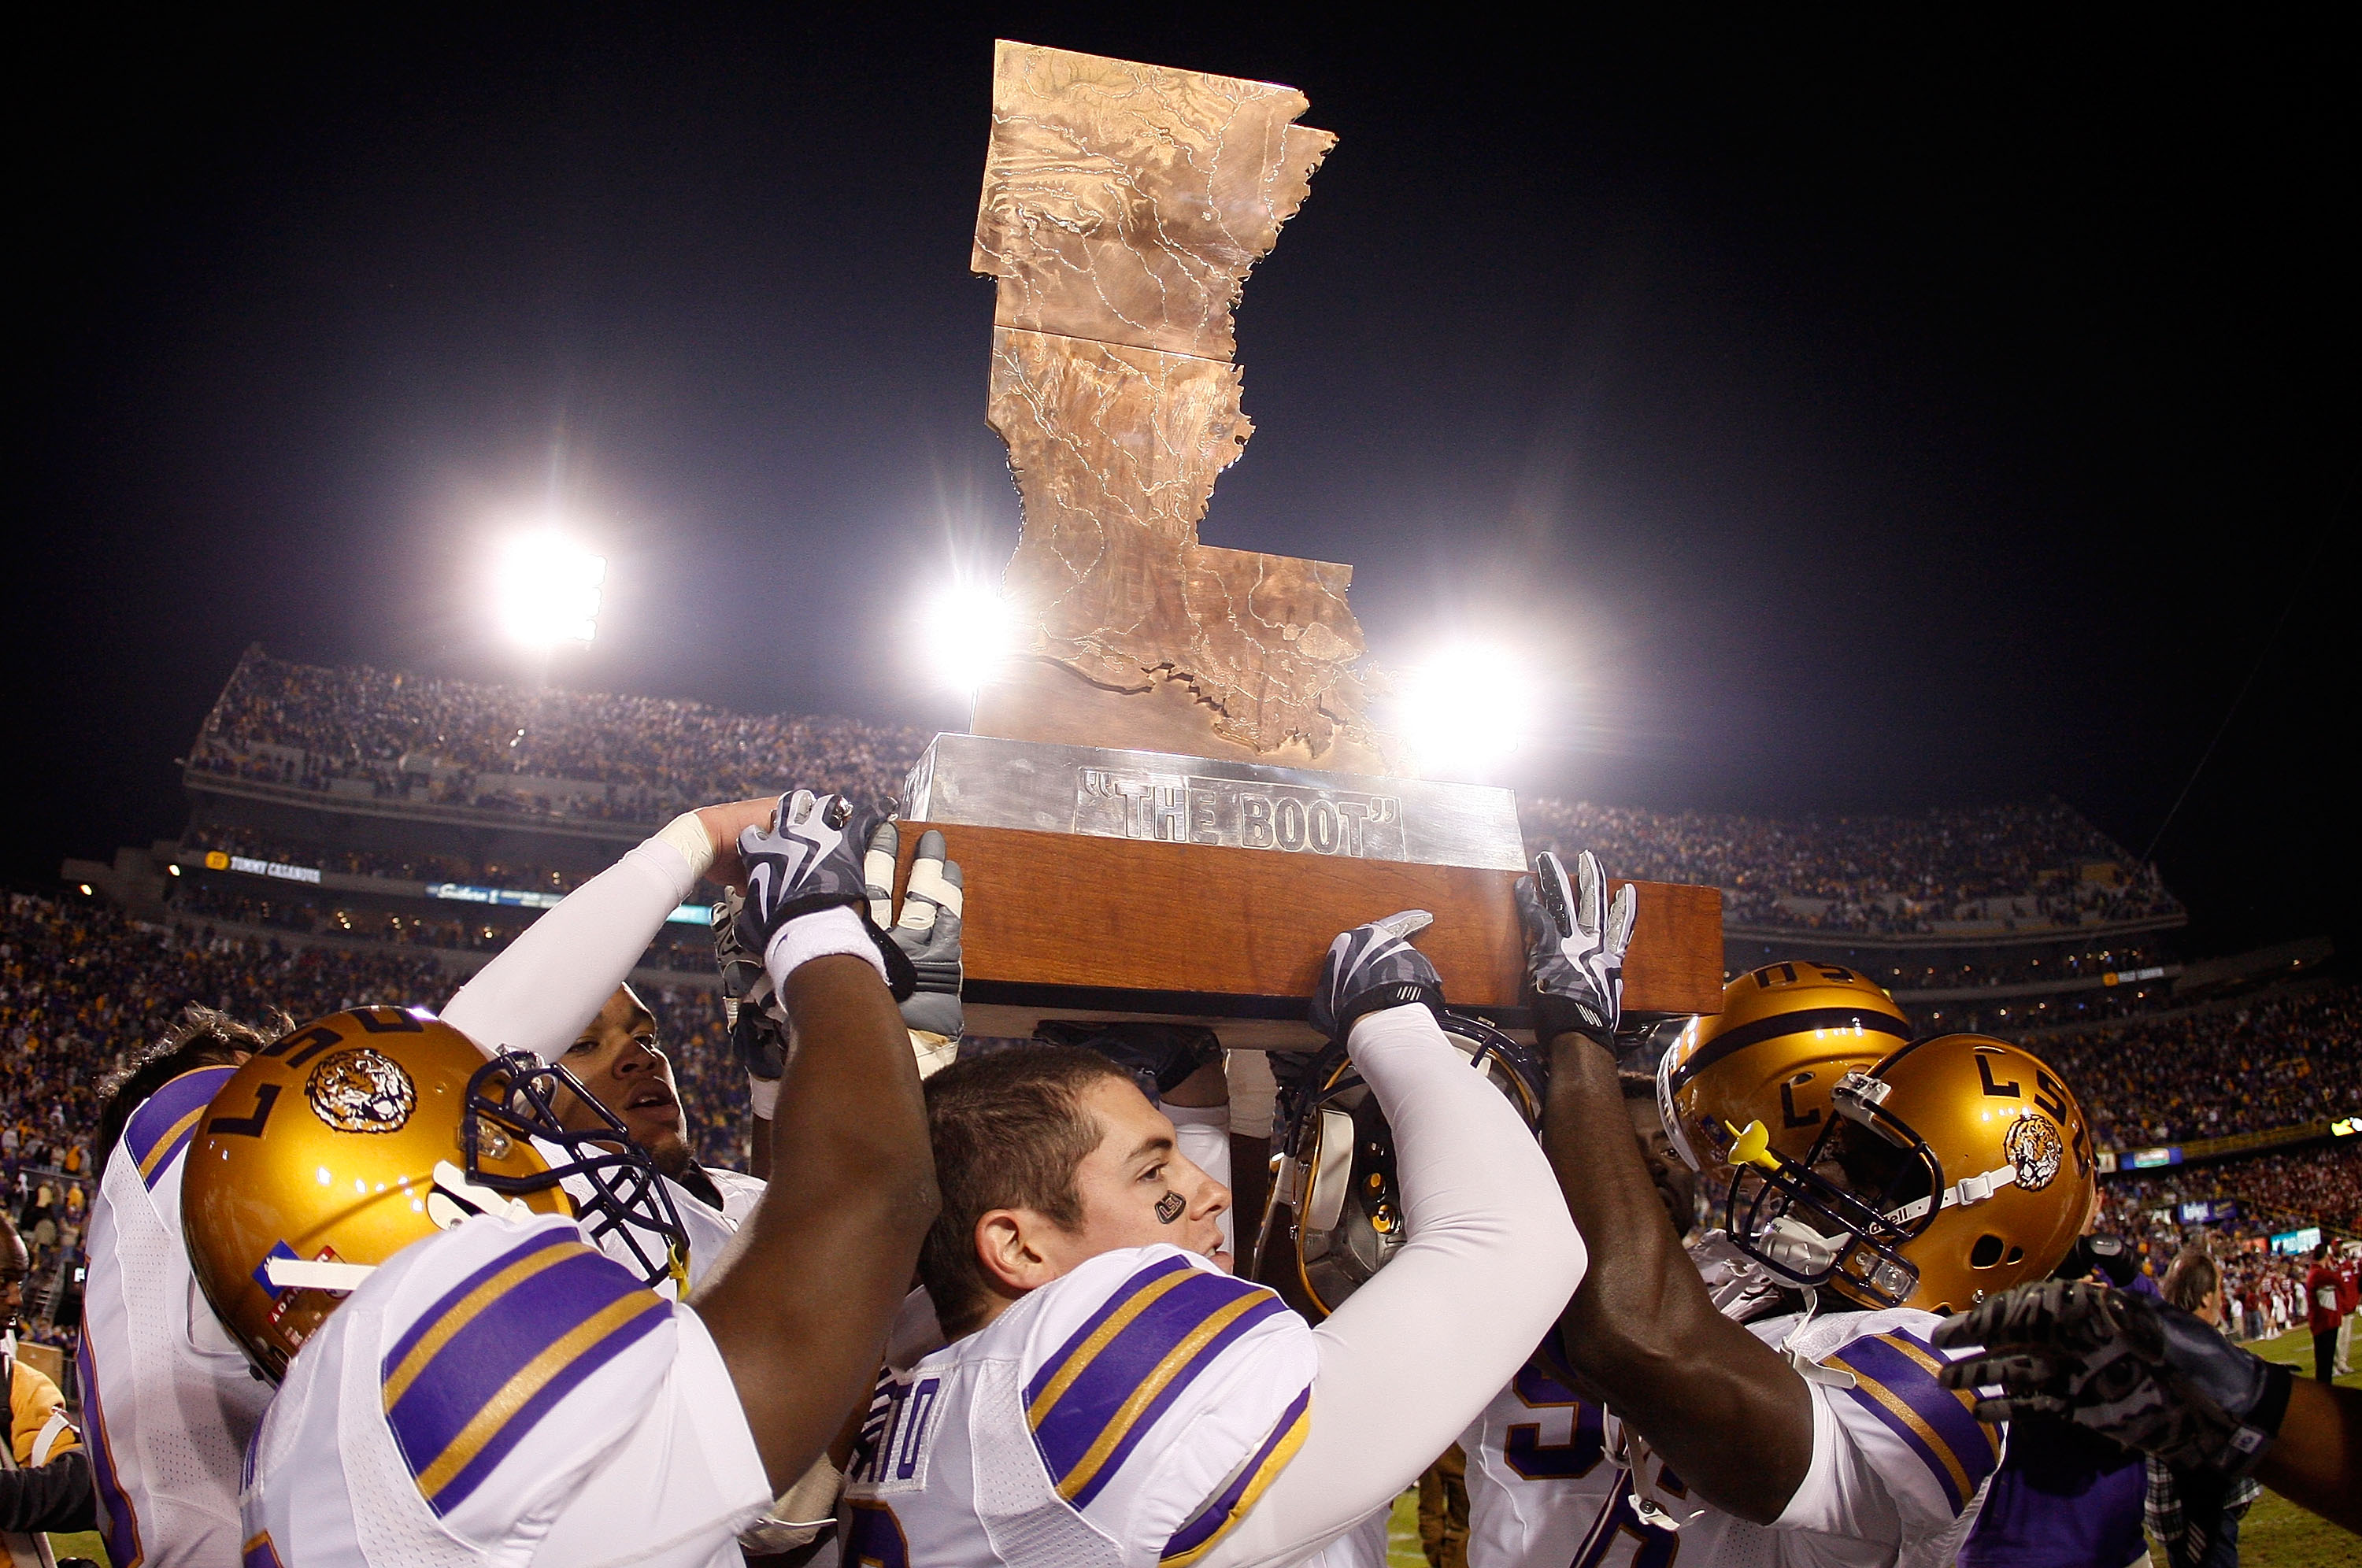 BATON ROUGE, LA - NOVEMBER 28:  Members of the LSU Tigers celebrate with 'The Boot' trophy after defeating the Arkansas Razorbacks 33-30 in overtime at Tiger Stadium on November 28, 2009 in Baton Rouge, Louisiana.  (Photo by Chris Graythen/Getty Images)